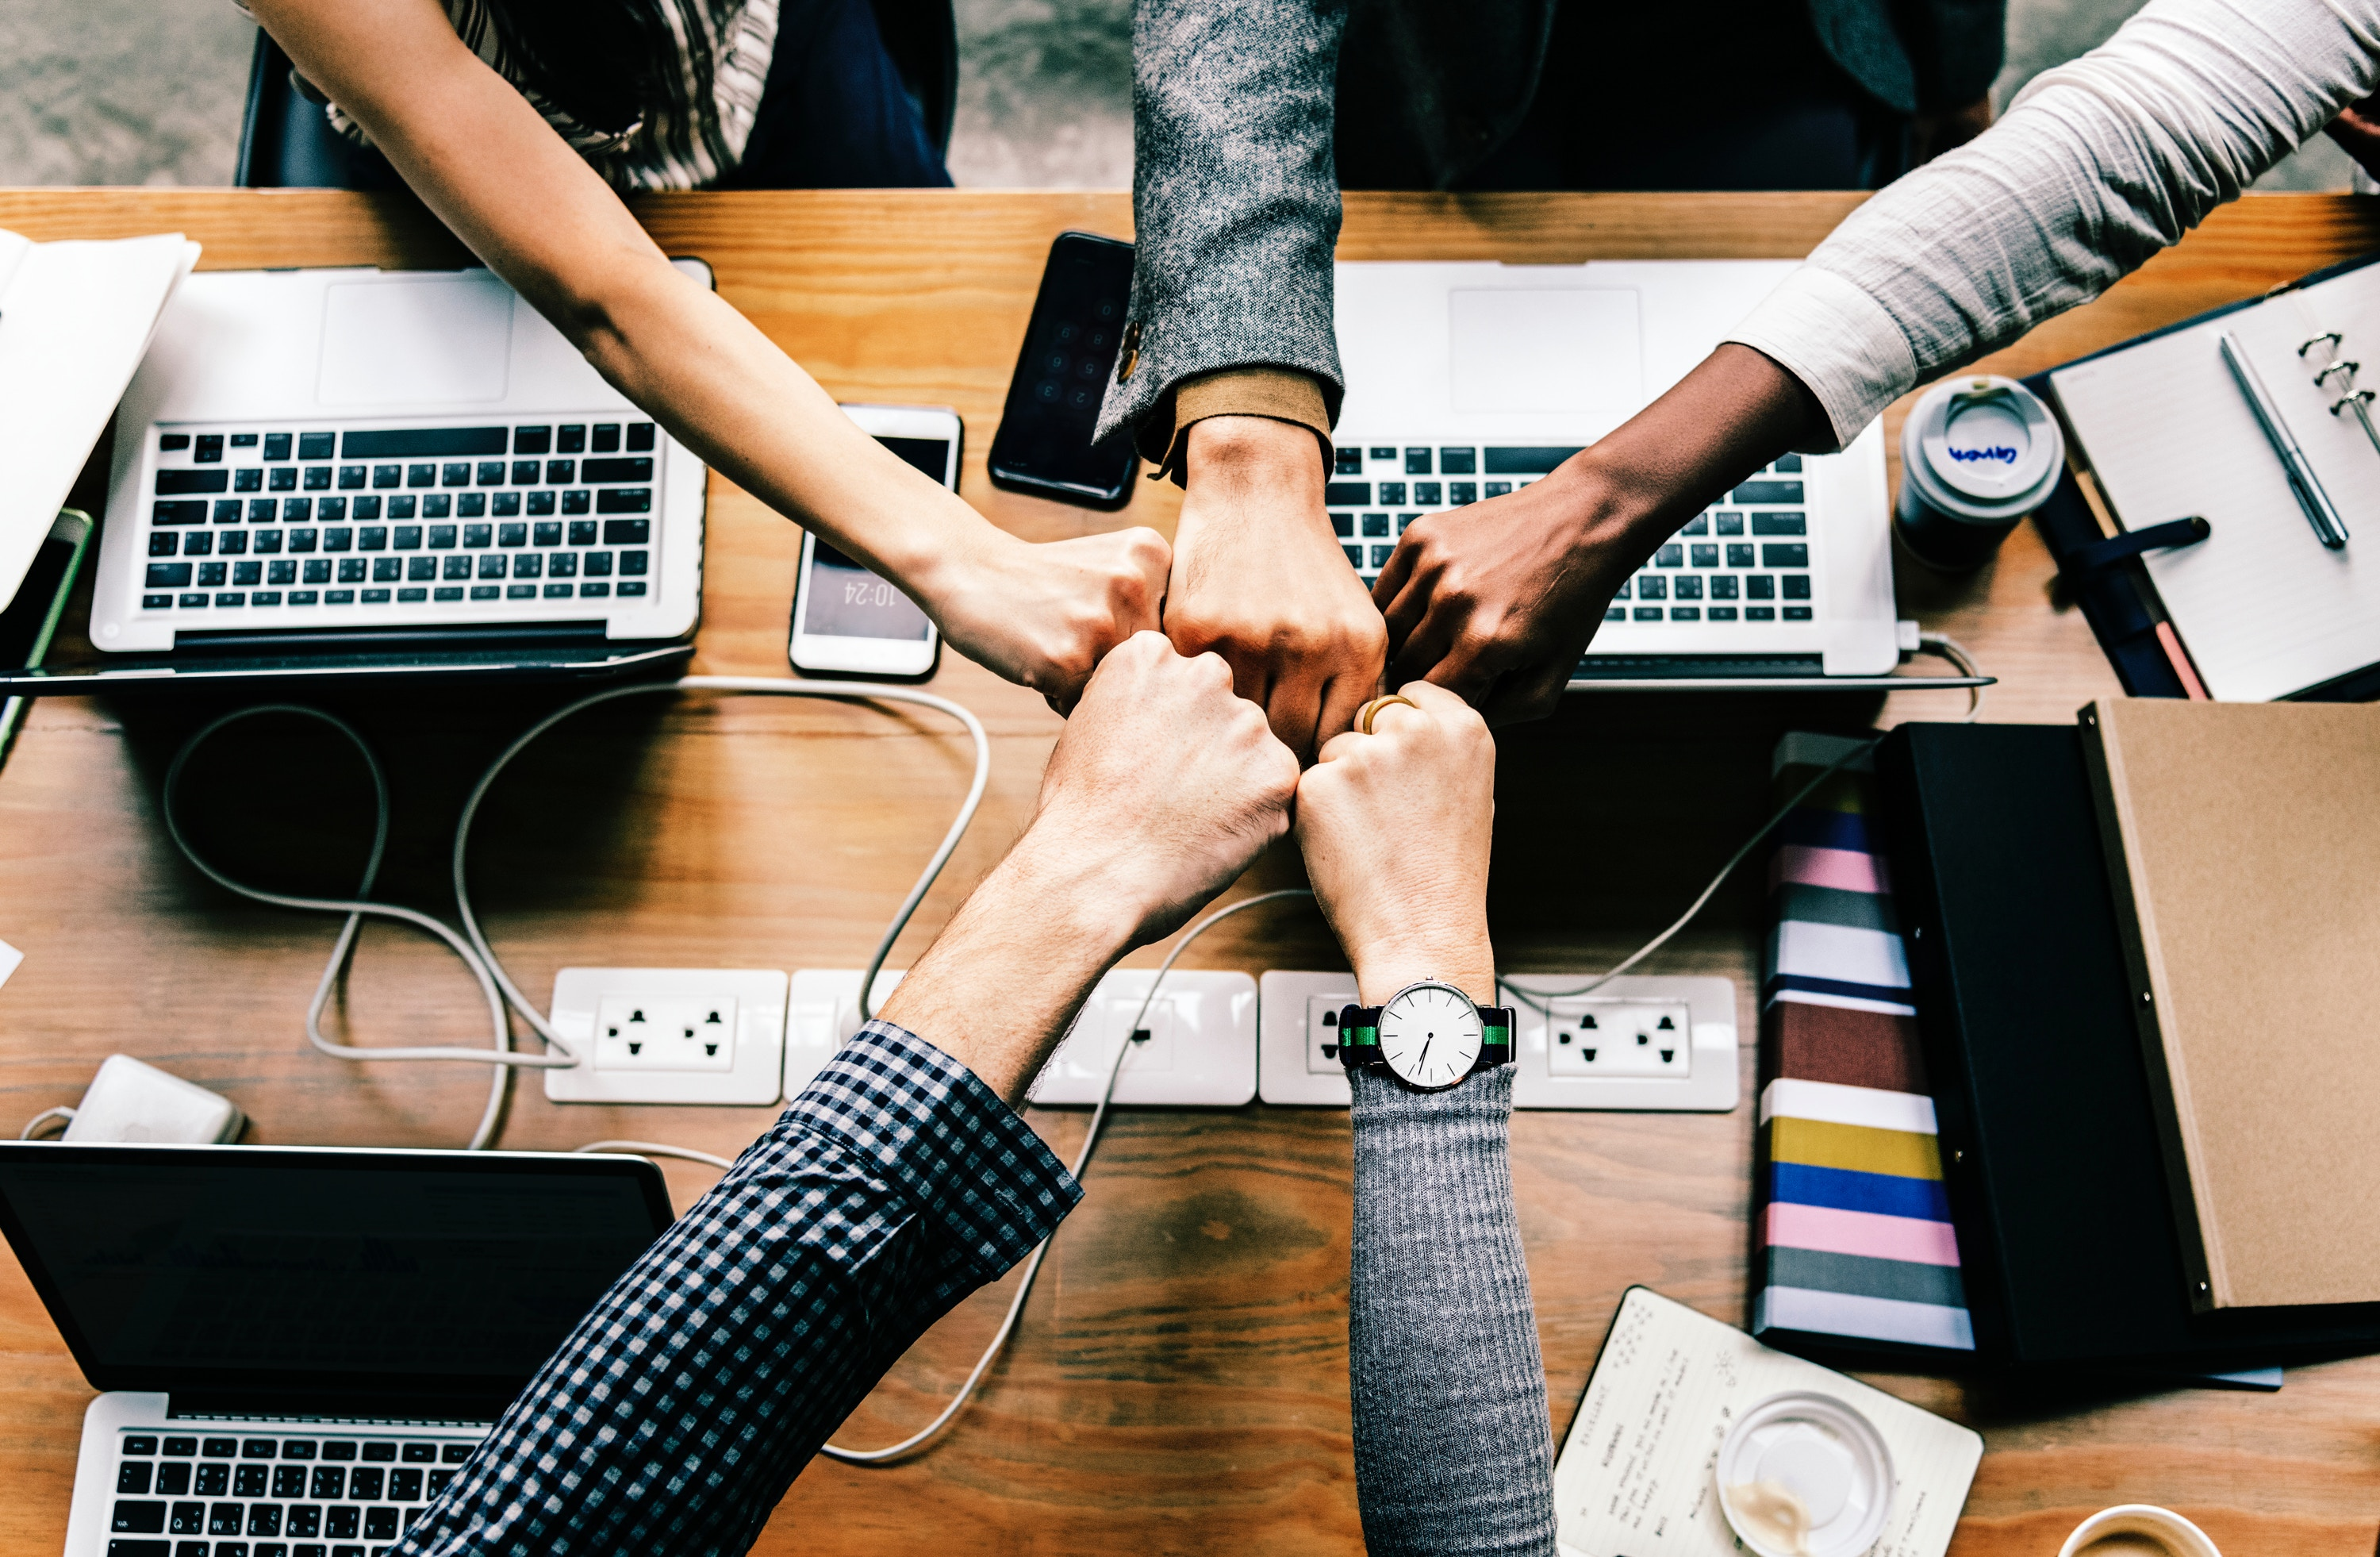 Contract management software helps accounting, human resources, sales, production, legal counsel, and IT personnel better collaborate.